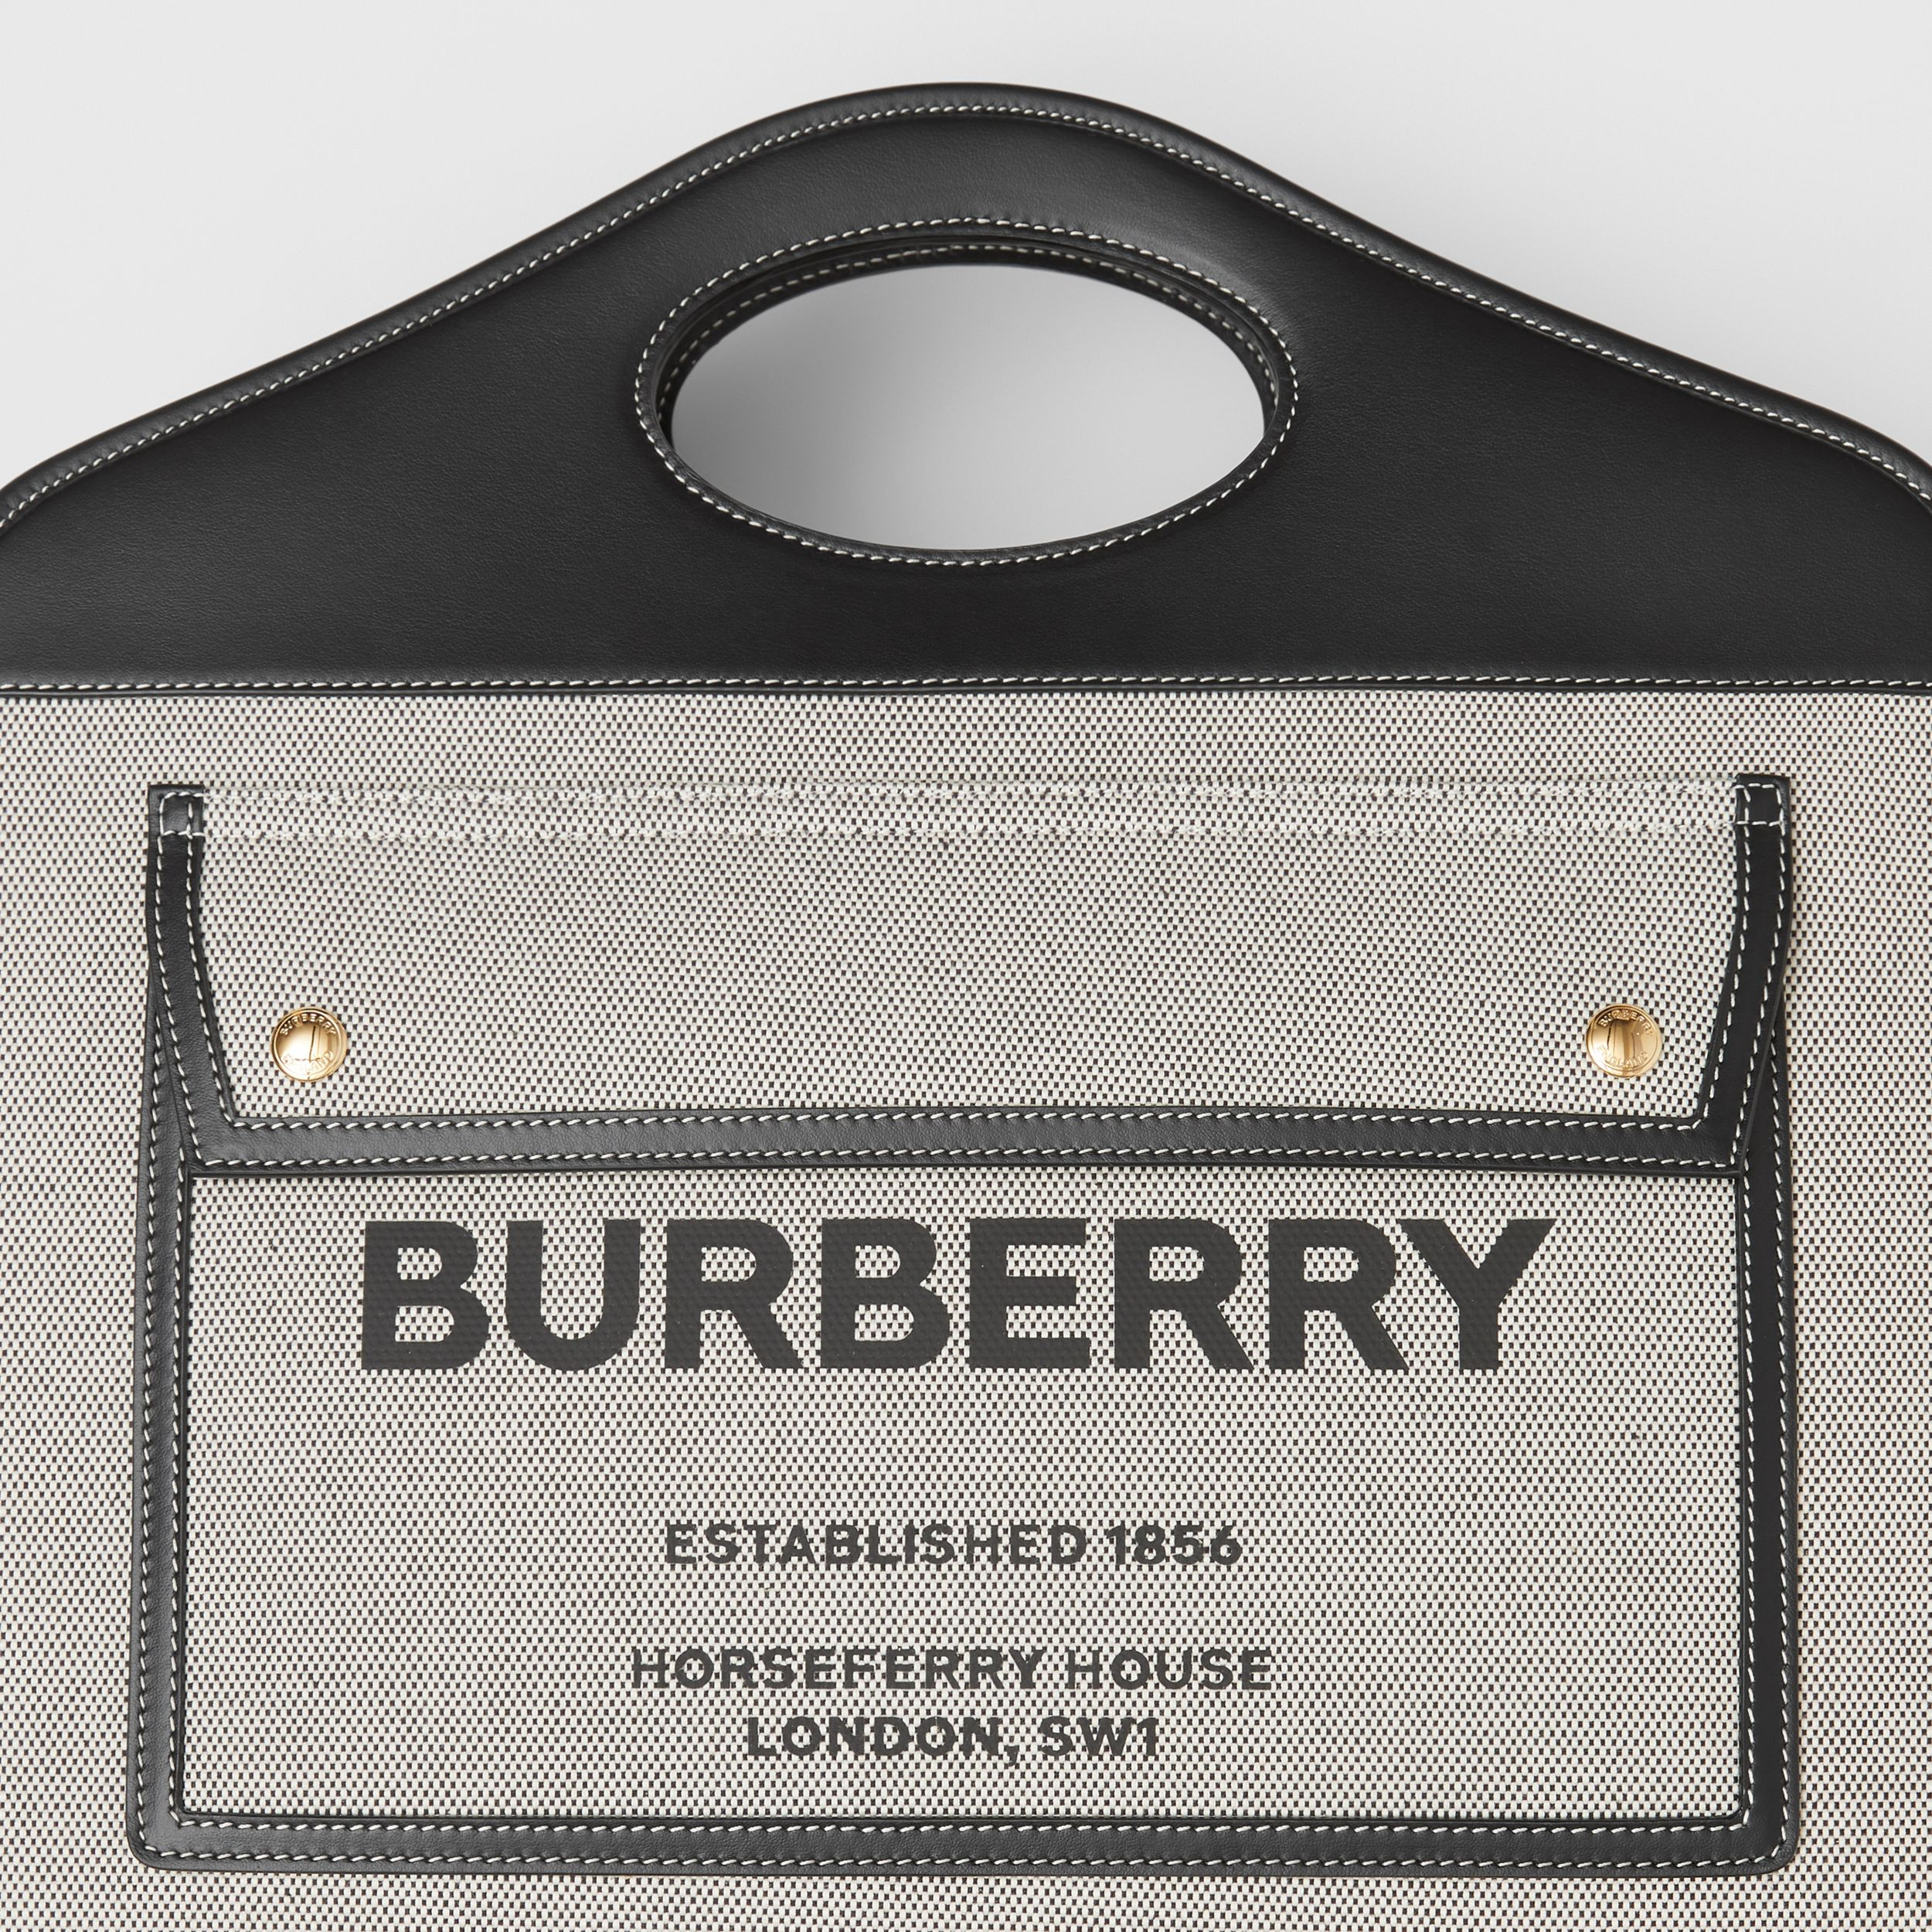 Medium Two-tone Canvas and Leather Pocket Tote in Black - Women | Burberry United Kingdom - 2